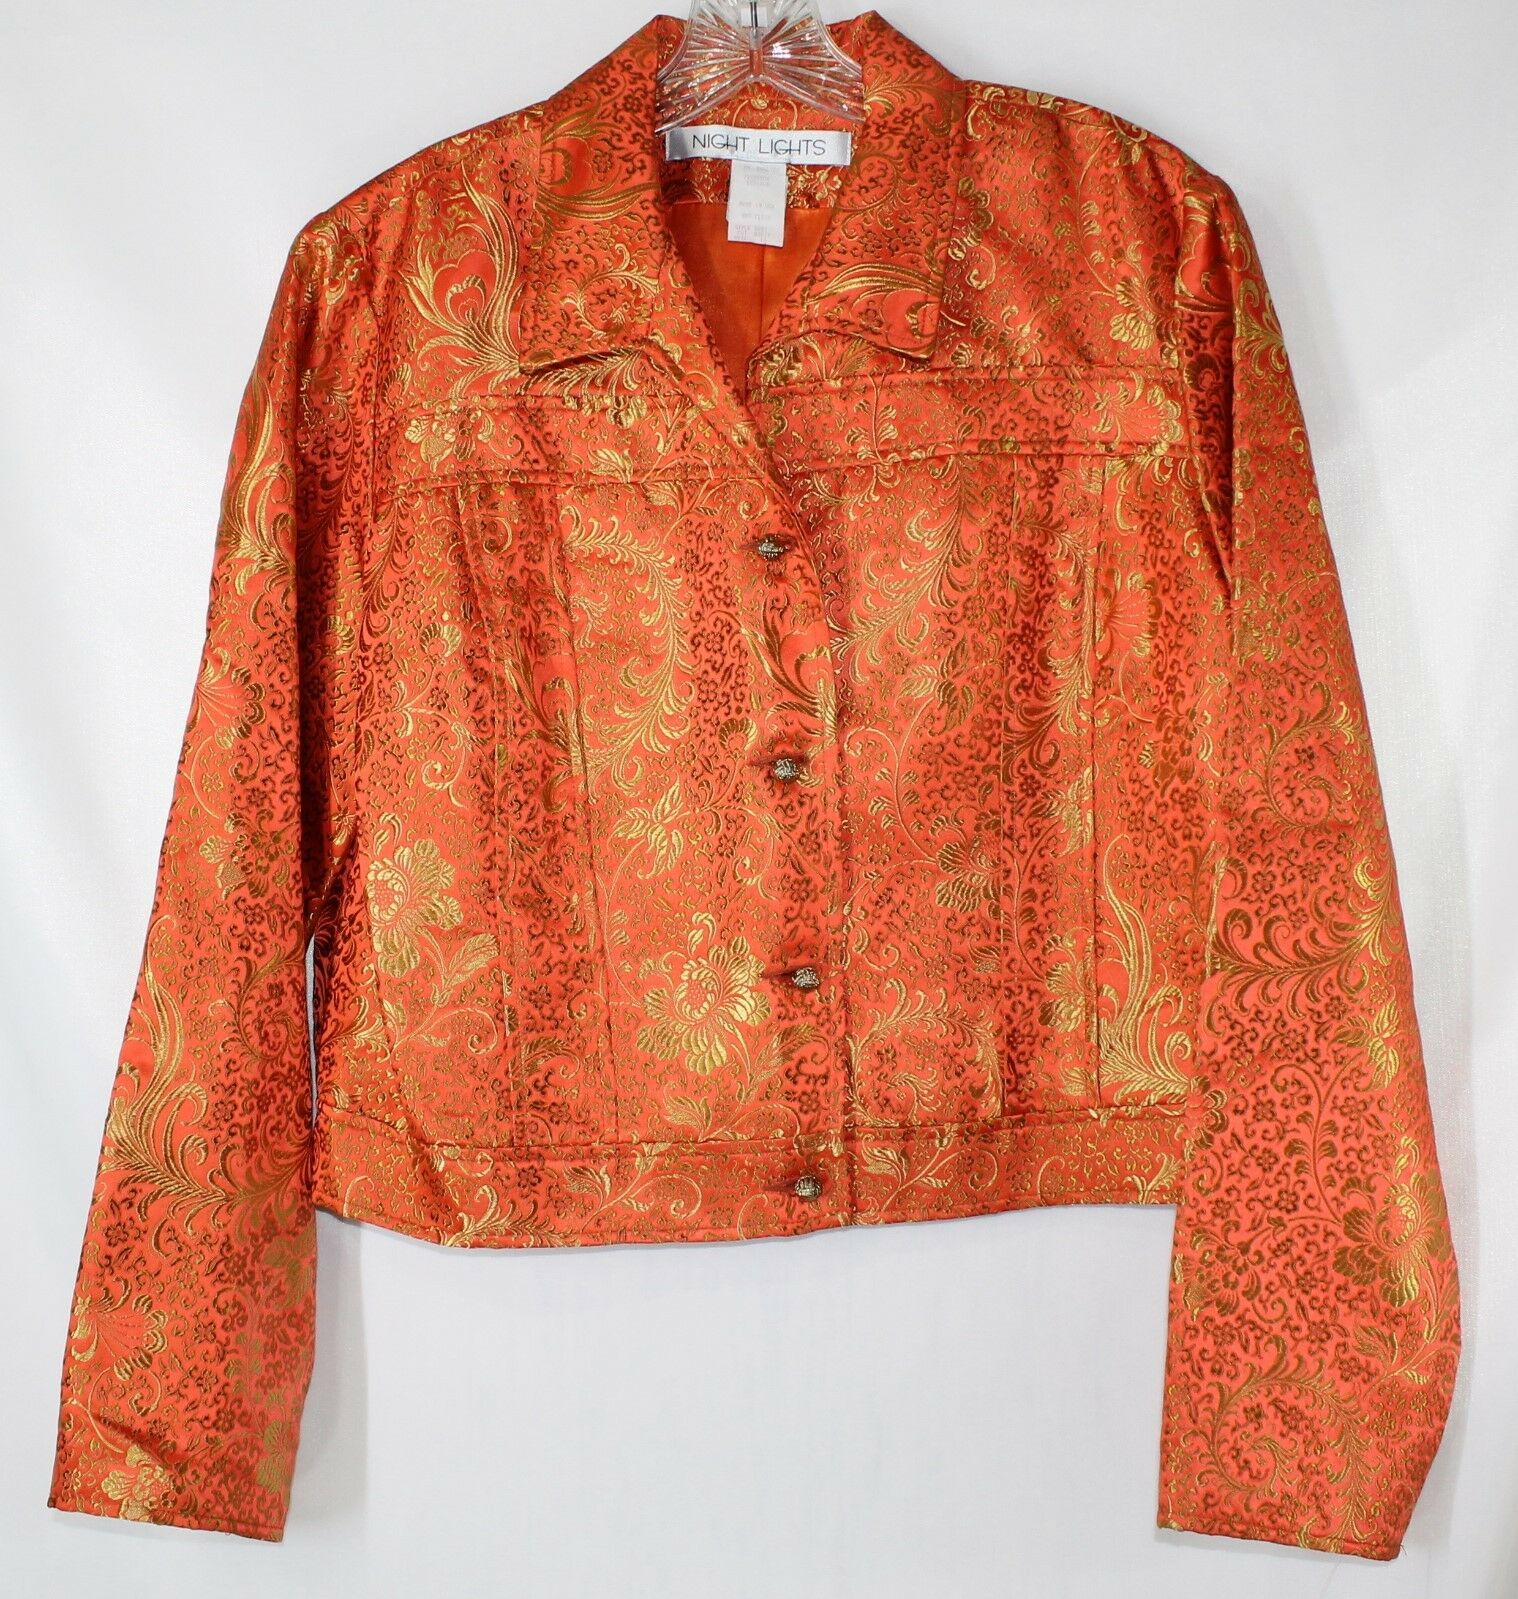 NWOT Night Lights Women's 10 Vibrant orange gold LS Embroidered Lined Button Up